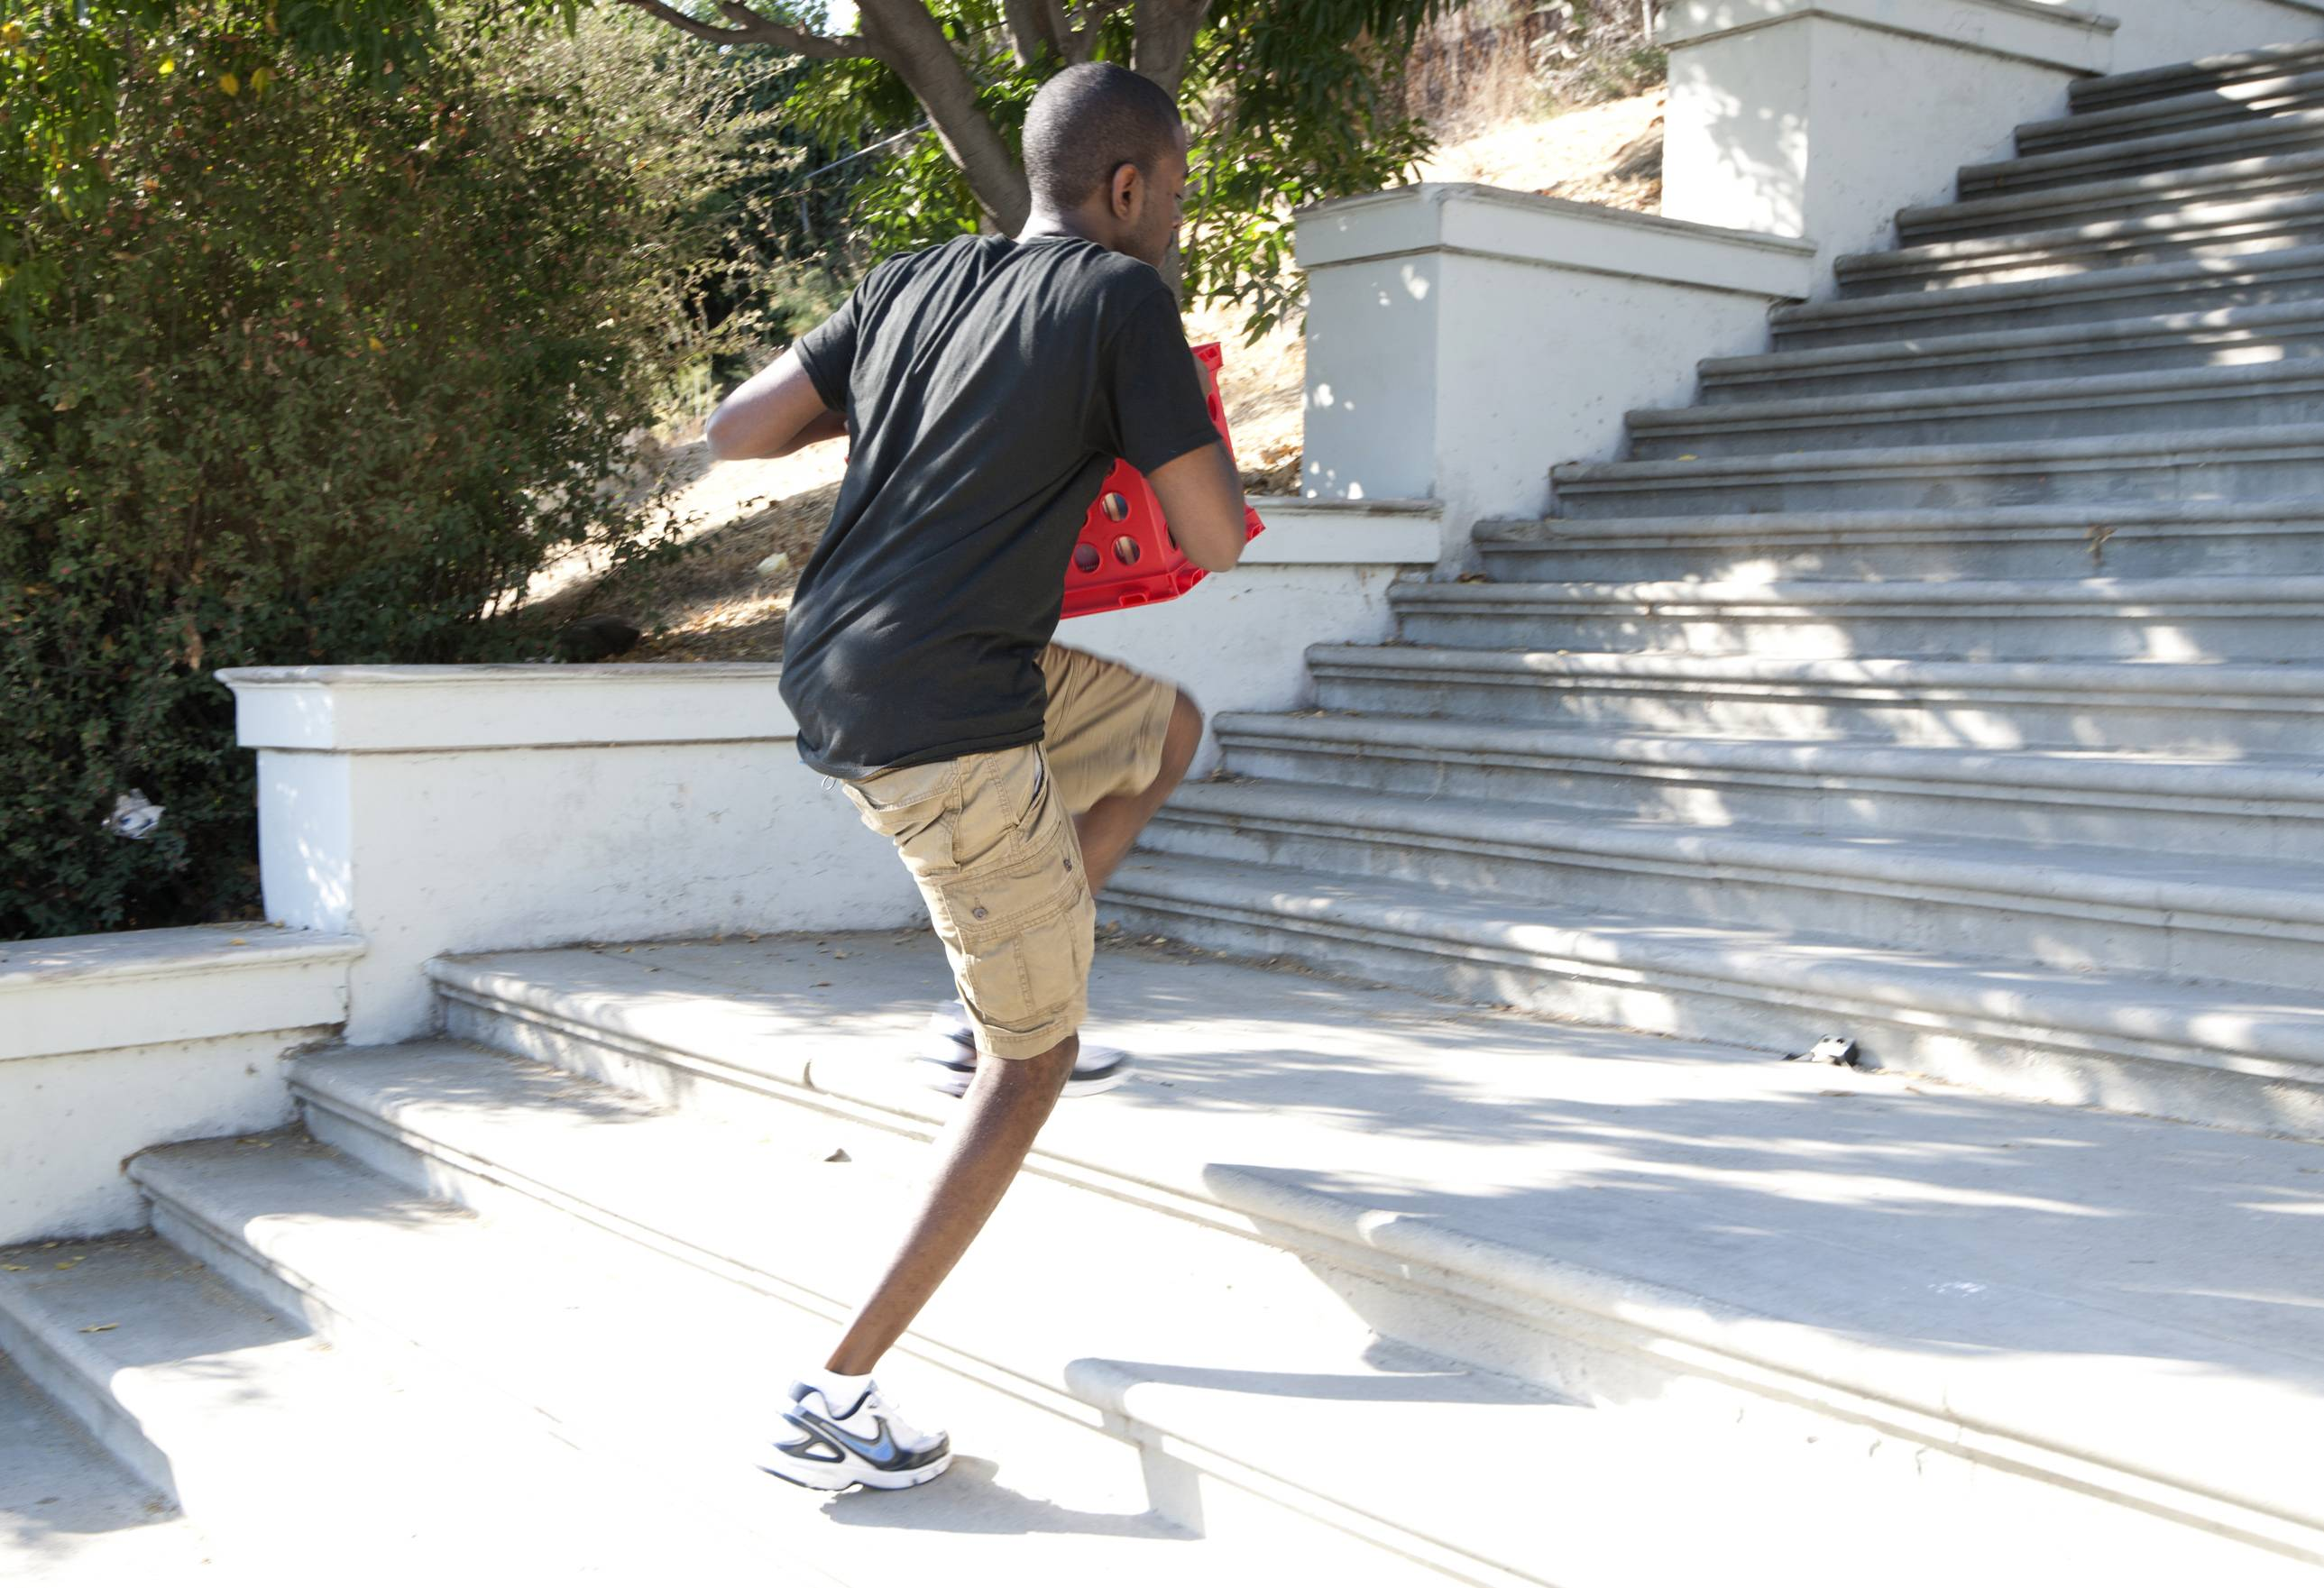 Lagging Behind - DJ M-Squared was struggling to carry the crates up the stairs. (Photo: Moses Mitchell/BET)